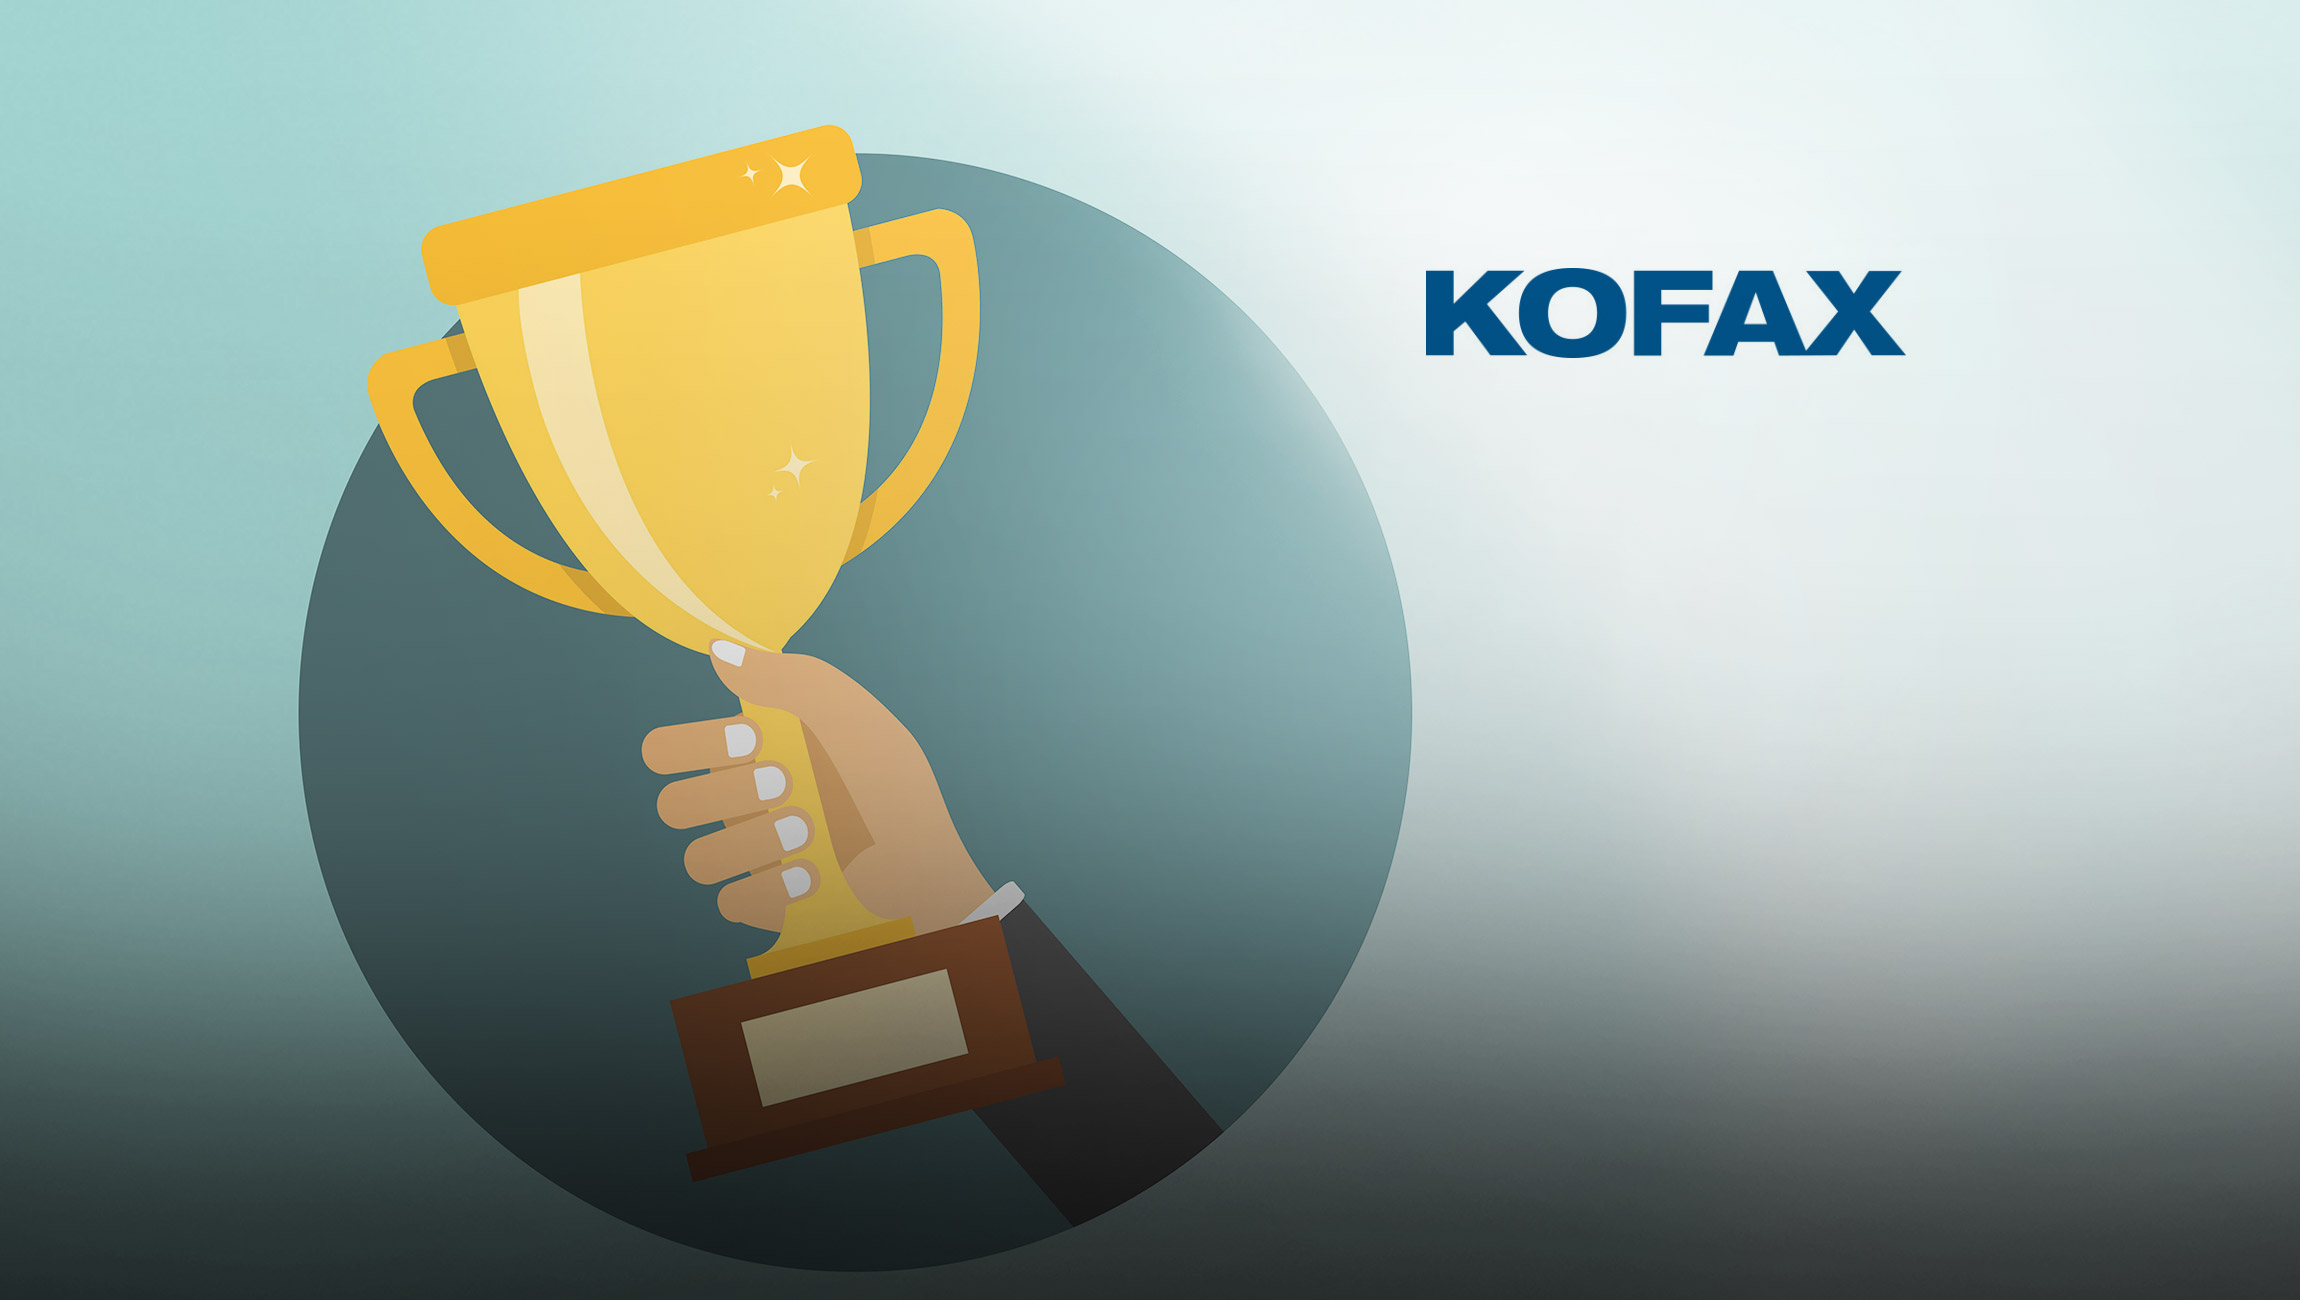 Kofax Wins a 2021 Most Loved Award from TrustRadius